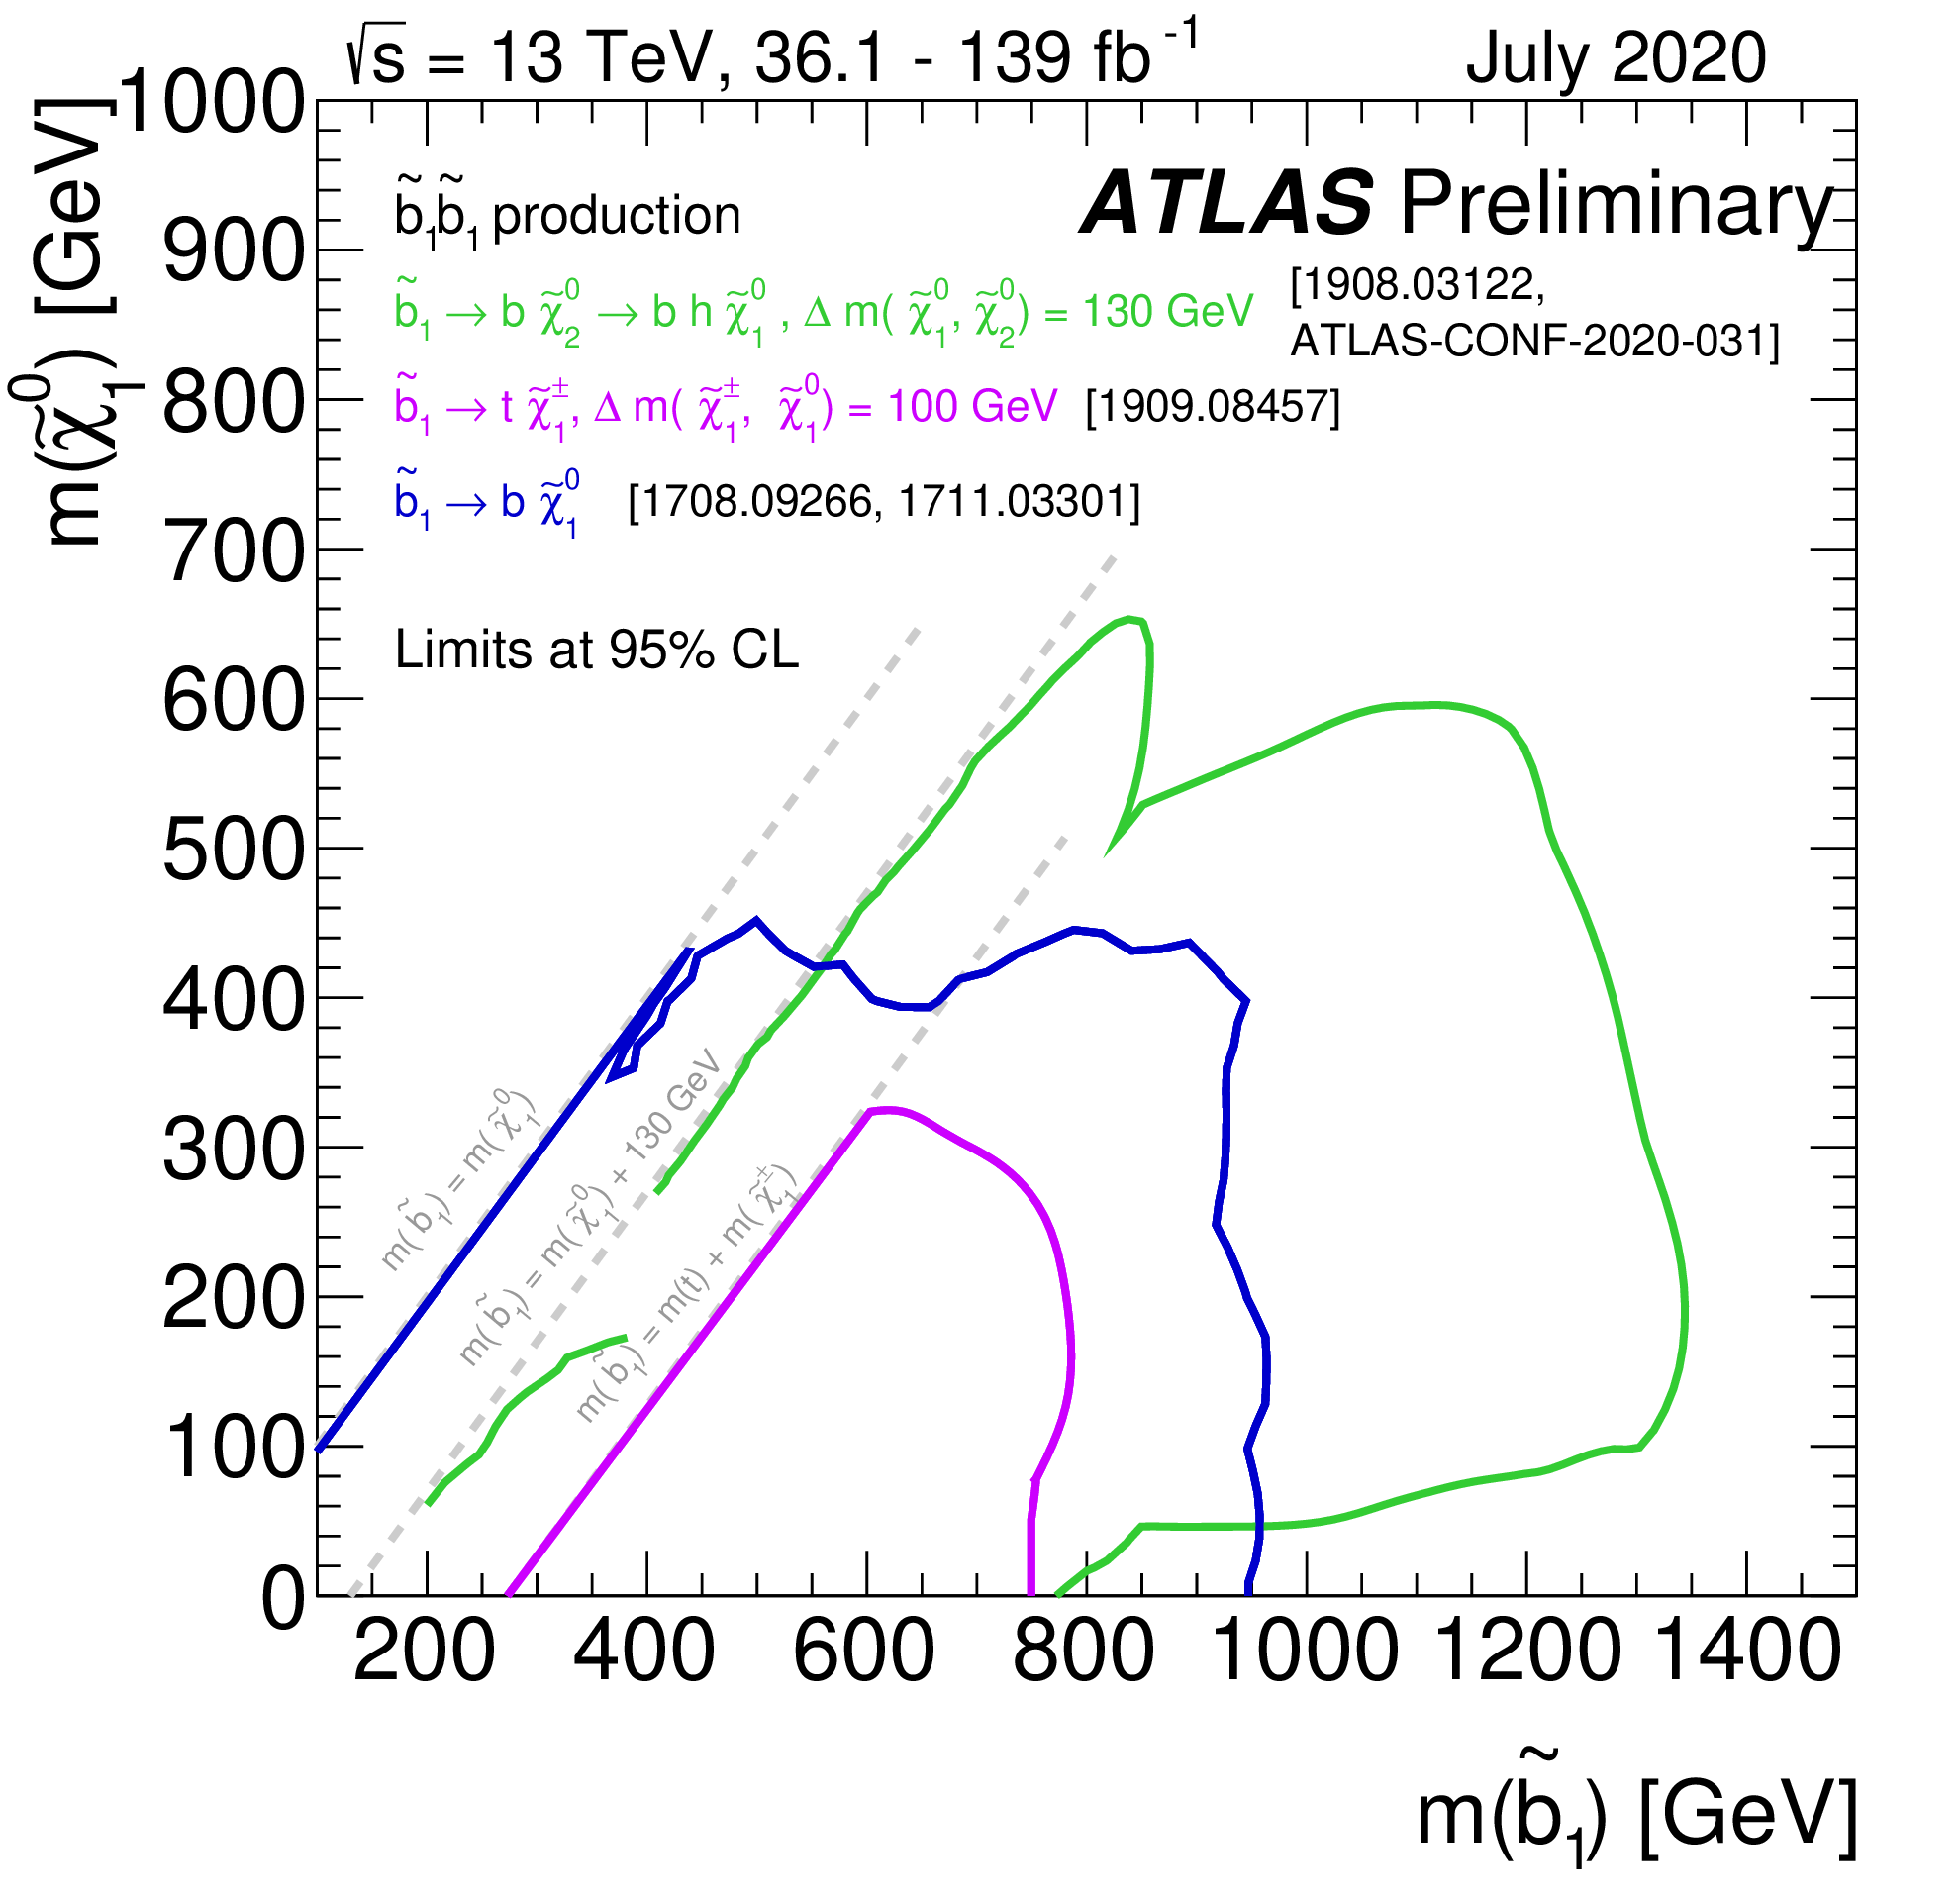 https://atlas.web.cern.ch/Atlas/GROUPS/PHYSICS/CombinedSummaryPlots/SUSY/ATLAS_SUSY_Sbottom_all/ATLAS_SUSY_Sbottom_all.png